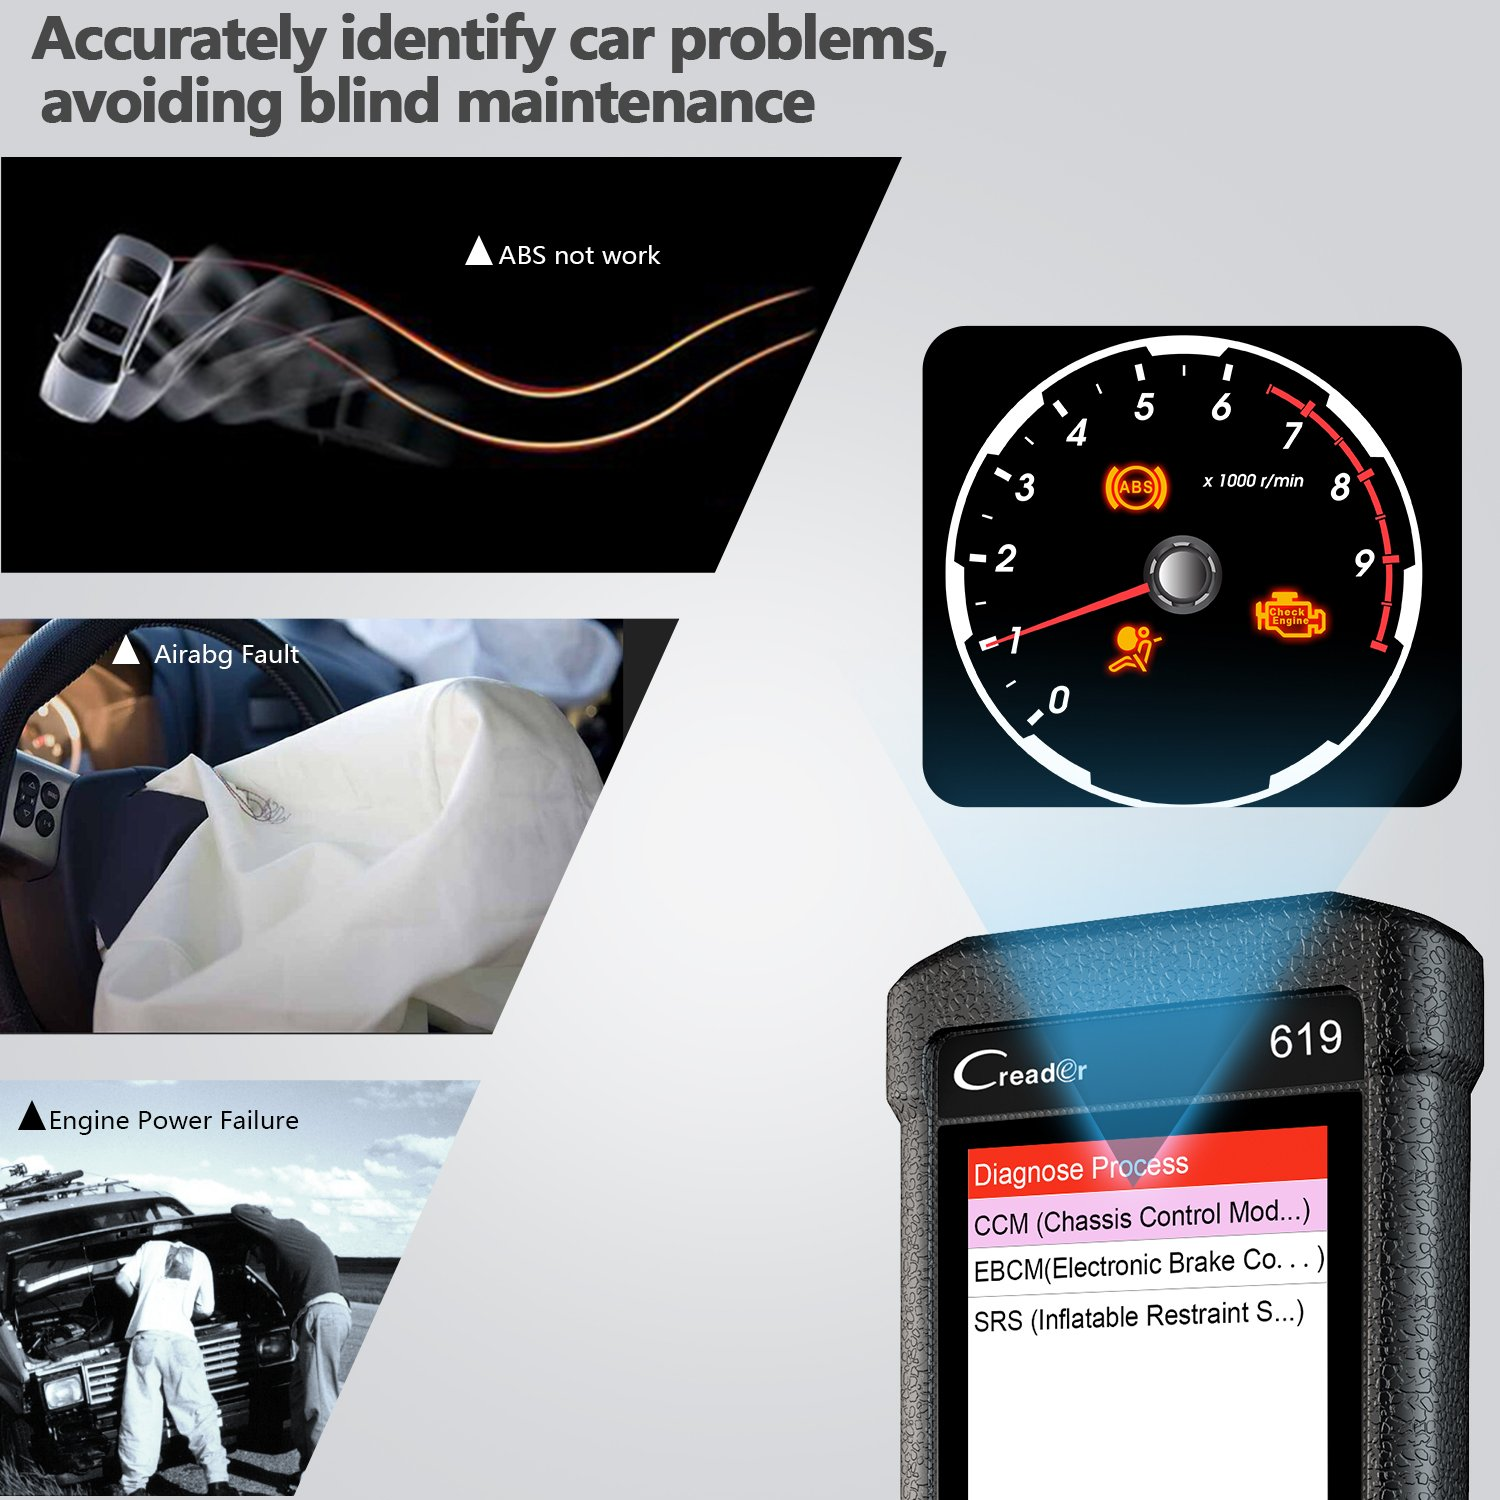 LAUNCH Creader CR619 Automotive ABS SRS Obd2 OBD ii Scanner Check Car Engine ABS Airbag Light Fault Code Readers Auto Dignostic Scan Tool with EVAP O2 On-Board Test by LAUNCH (Image #4)